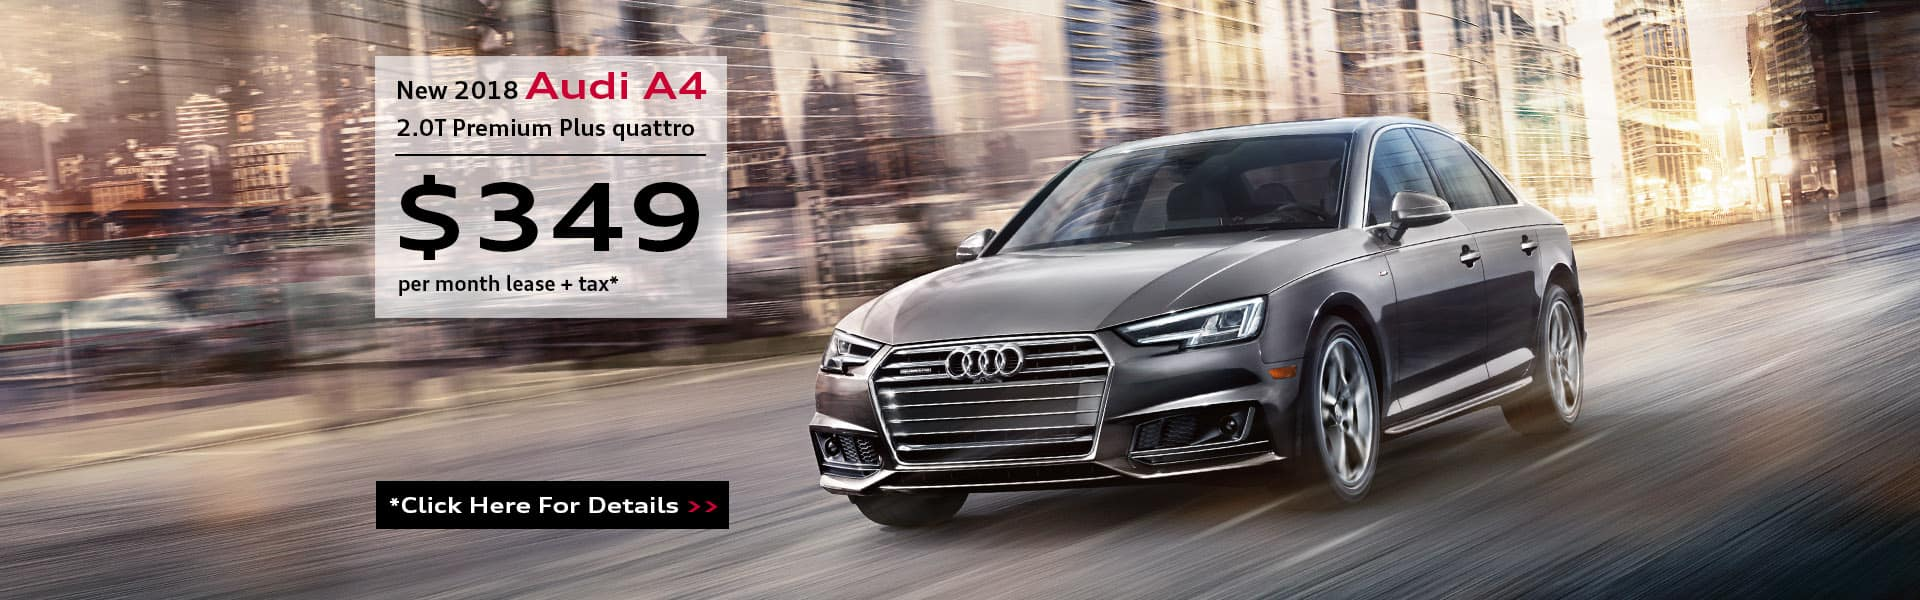 A4 Lease Specials - 349 per month